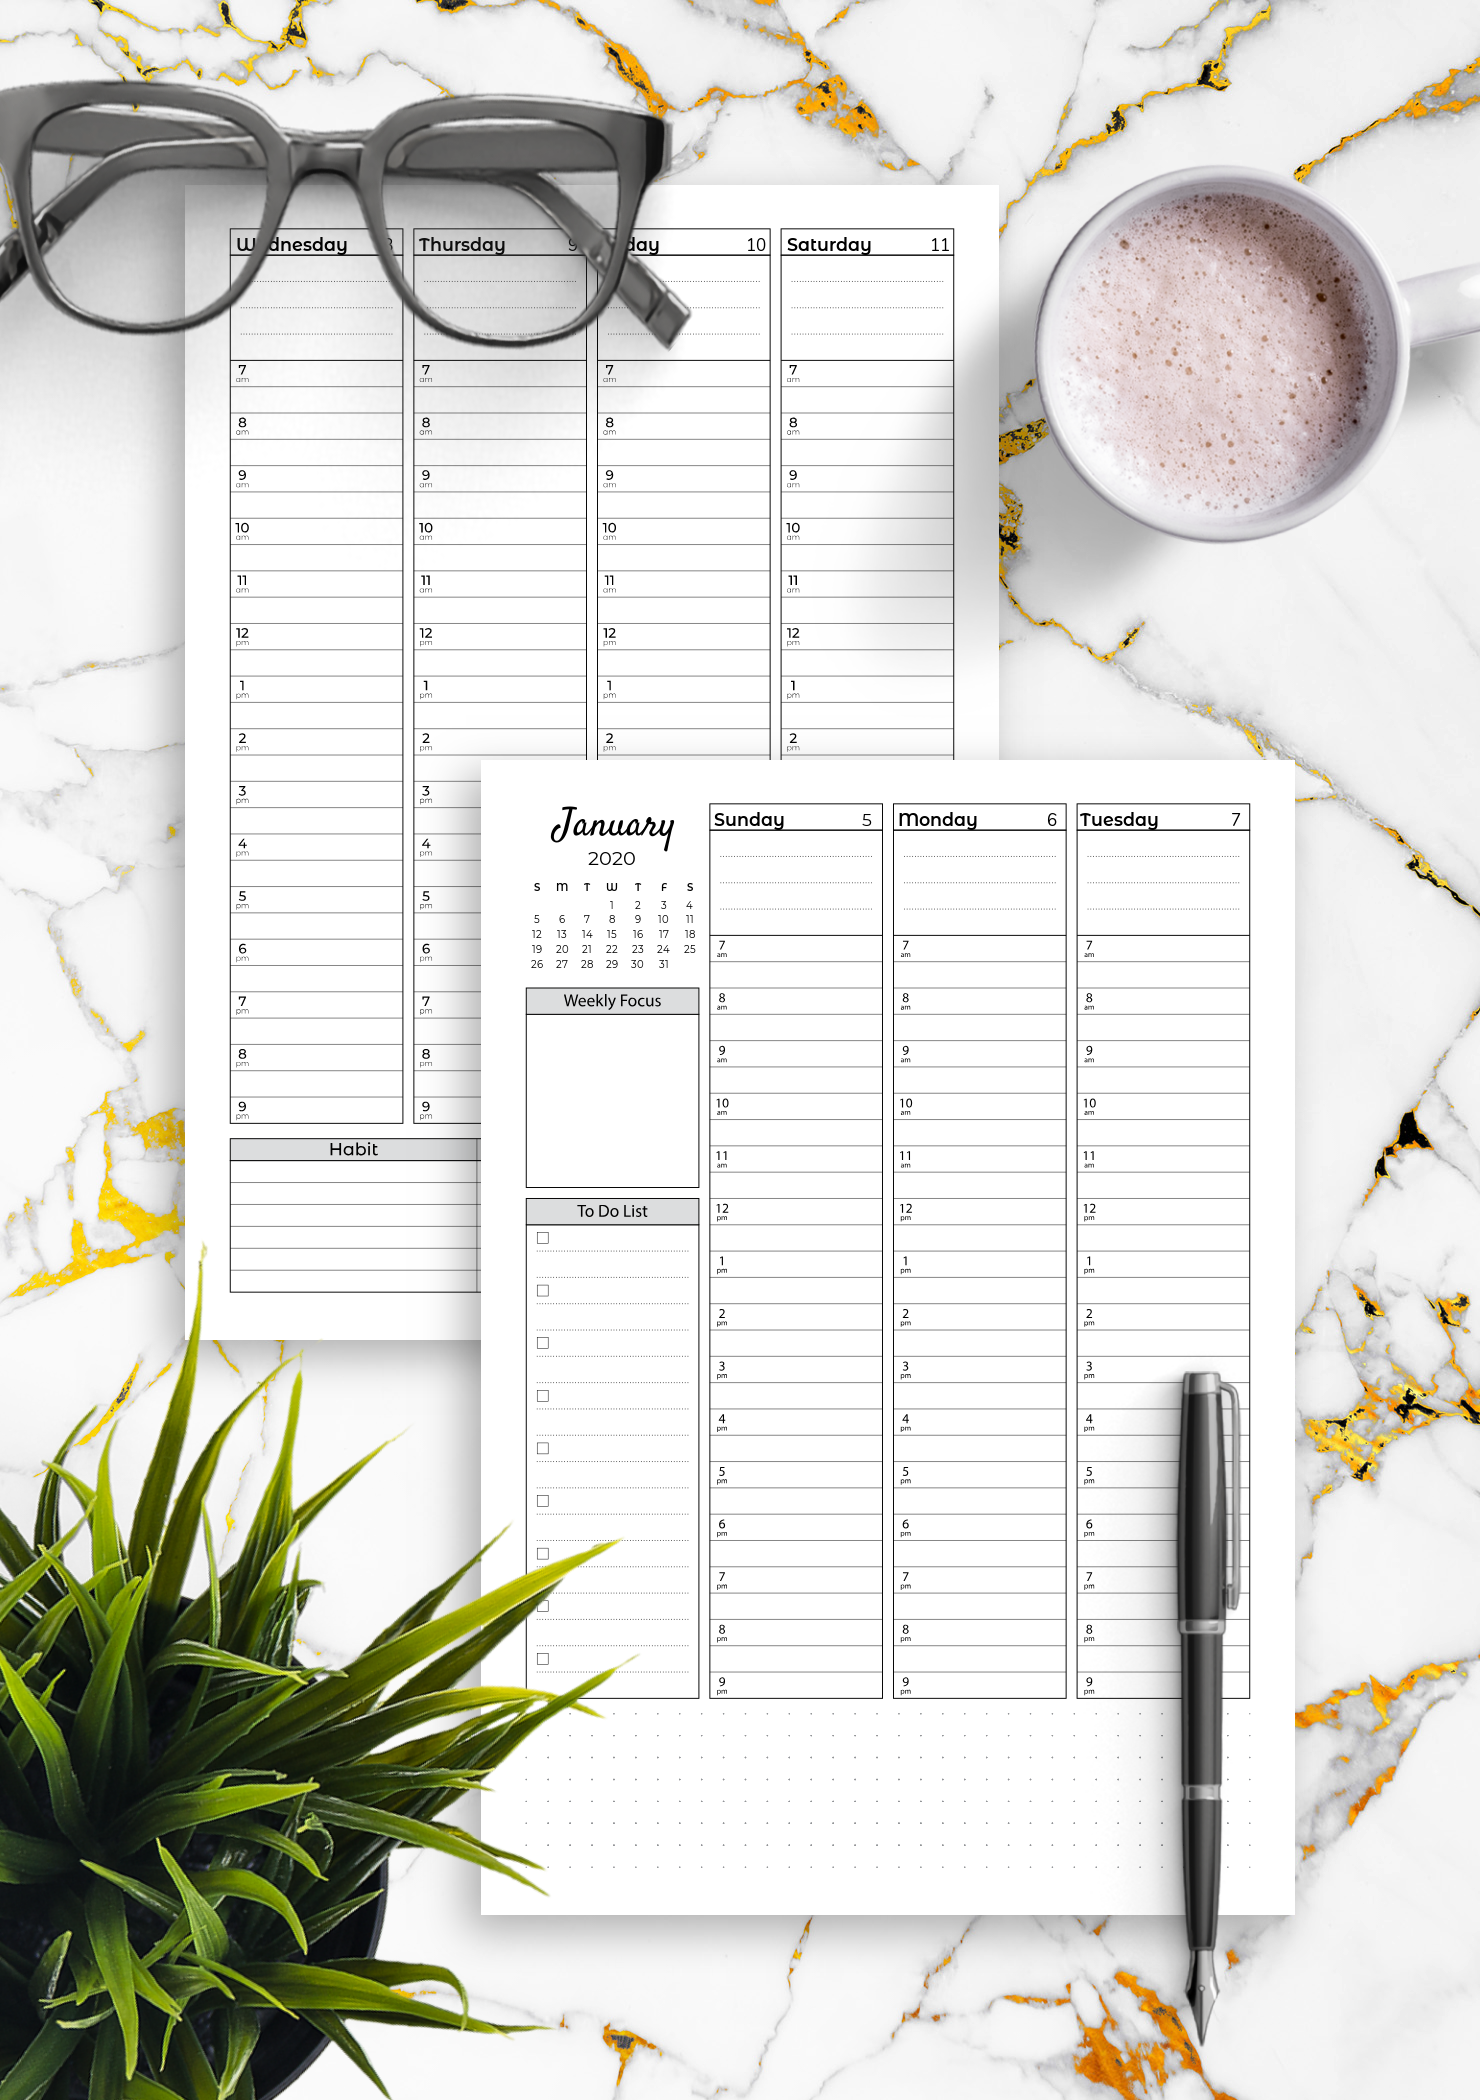 graphic about Printable Weekly to Do List named Cost-free Printable Weekly hourly planner with todo listing PDF Obtain